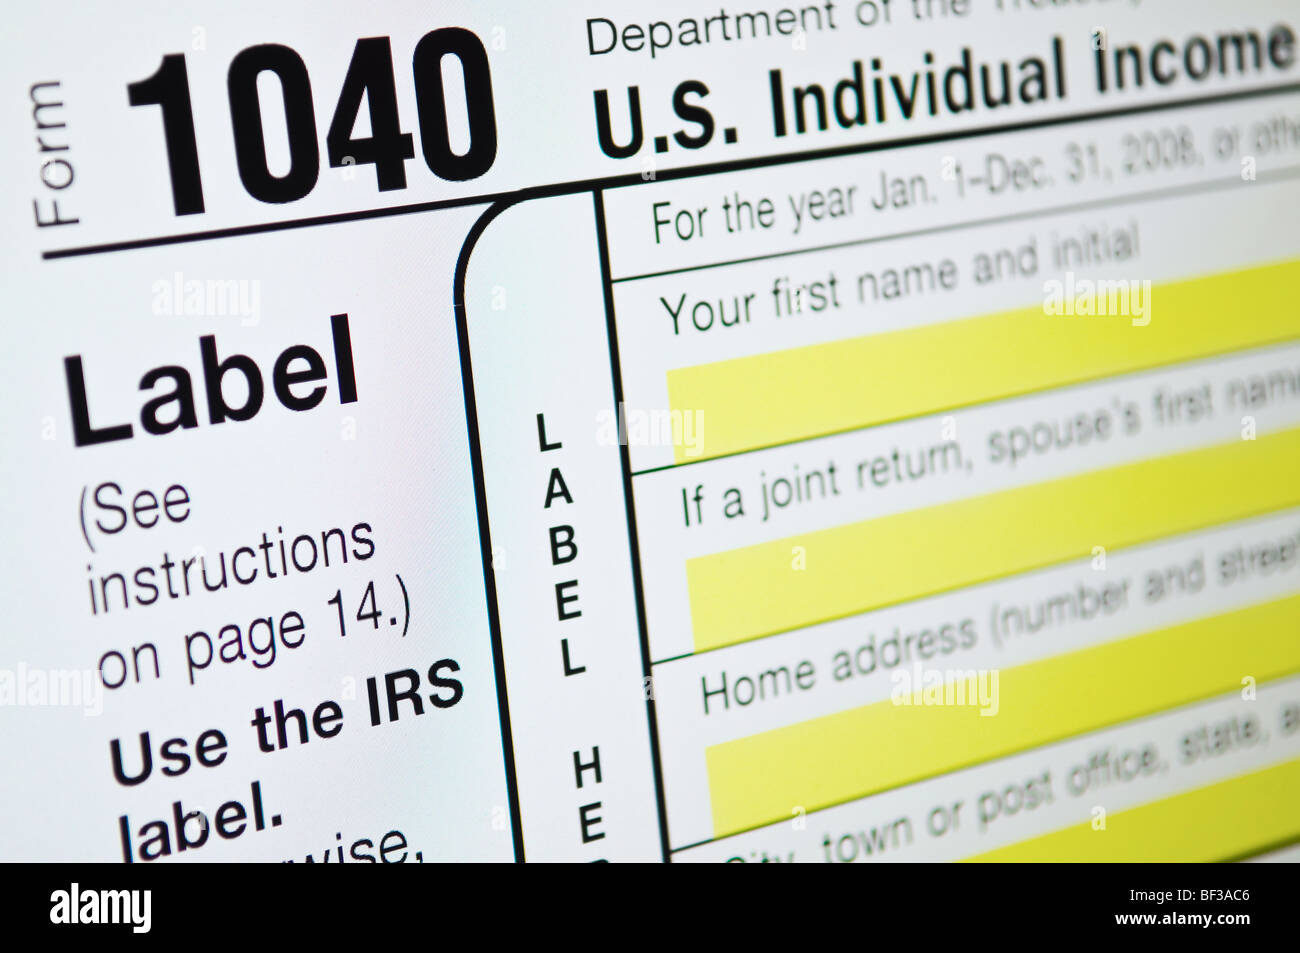 Individual income tax forms from the United States on computer monitor - Stock Image